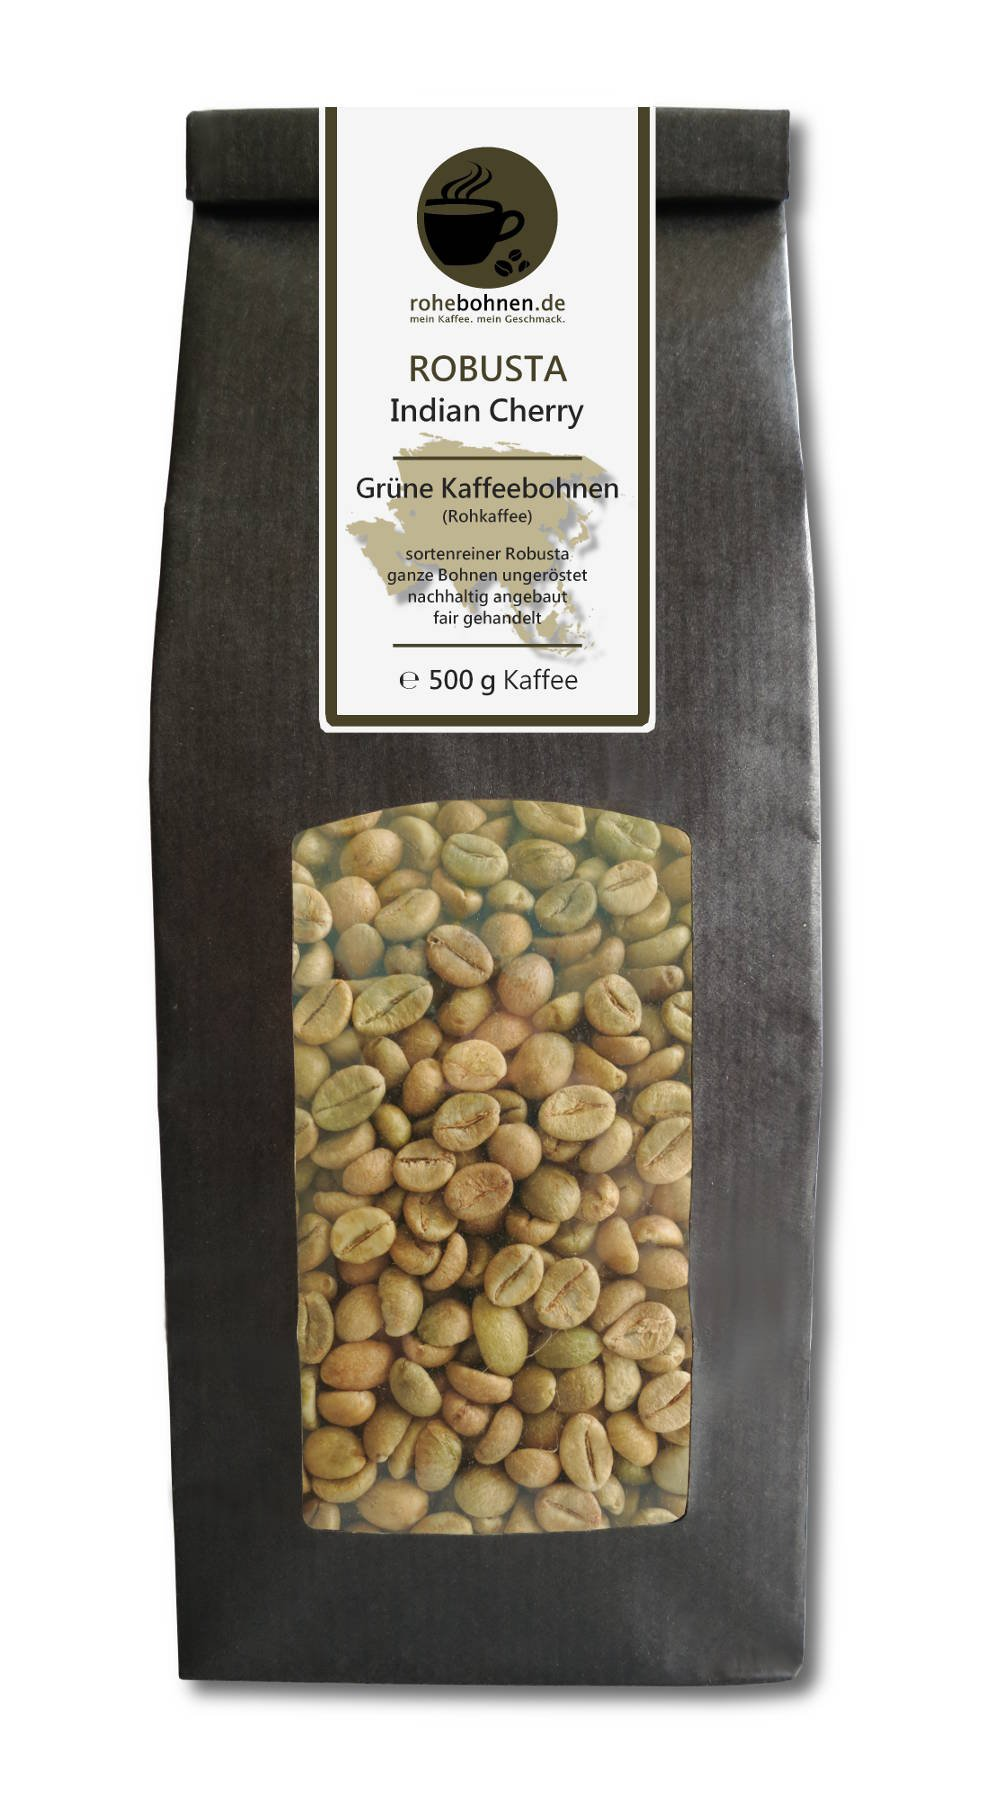 Green-coffee-beans-Robusta-Indian-Cherry-raw-coffee-beans